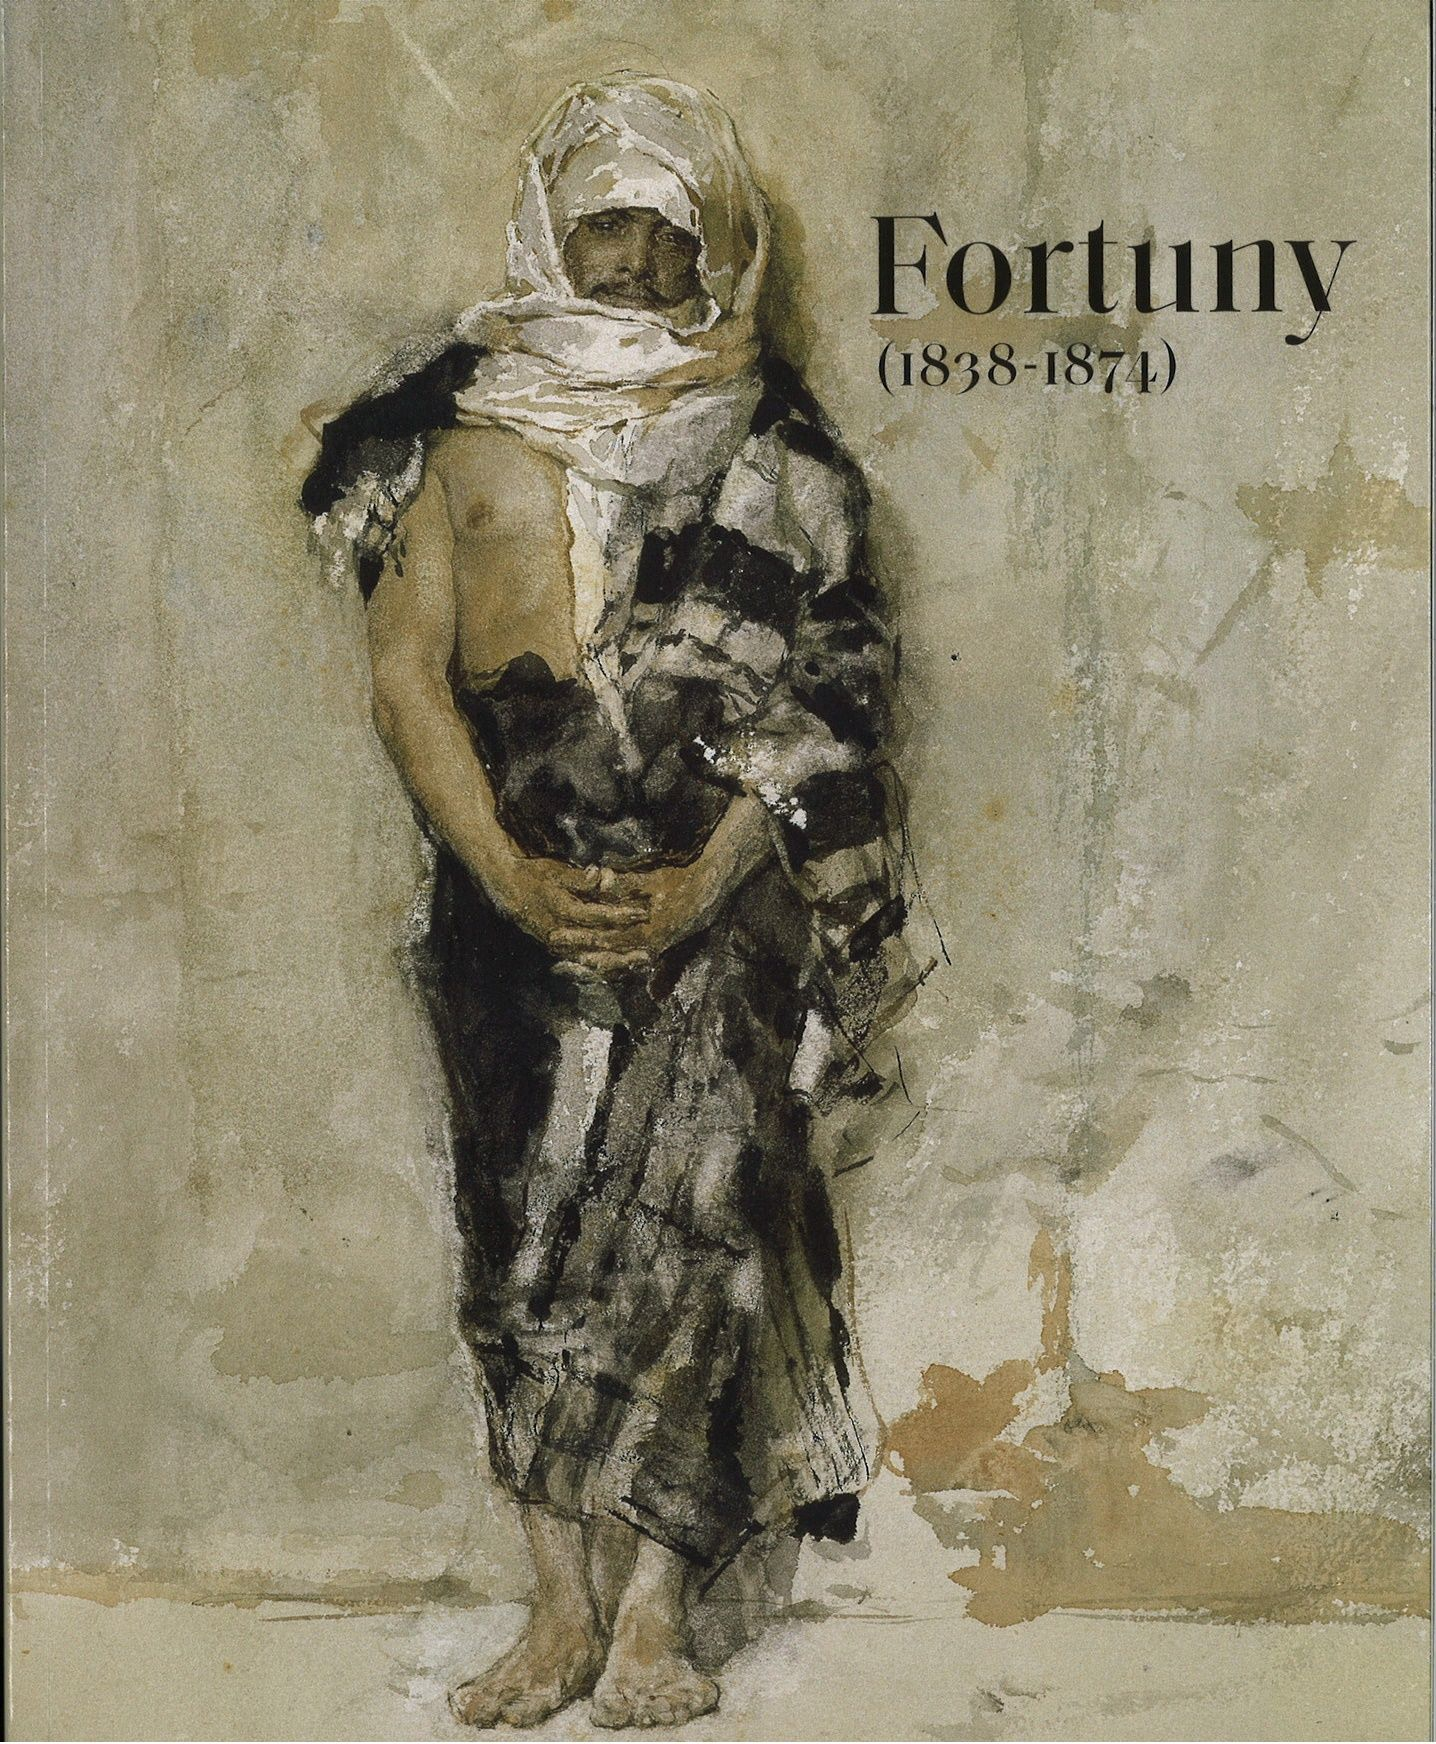 FORTUNY (1838-1874)